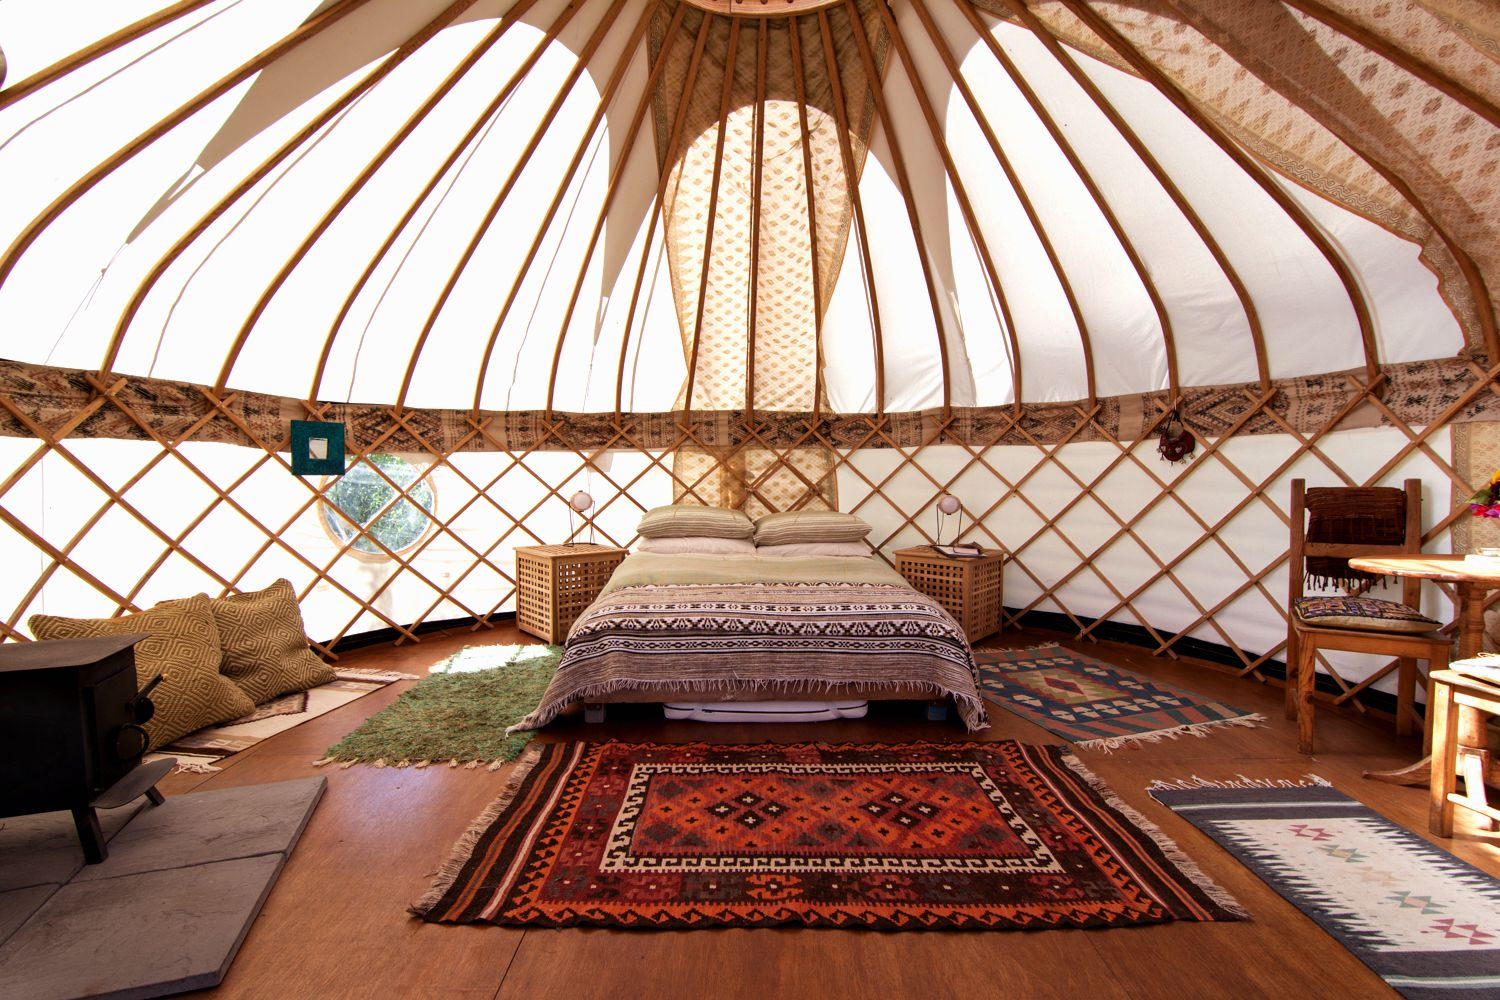 Glamping in St. Austell – Glampingly